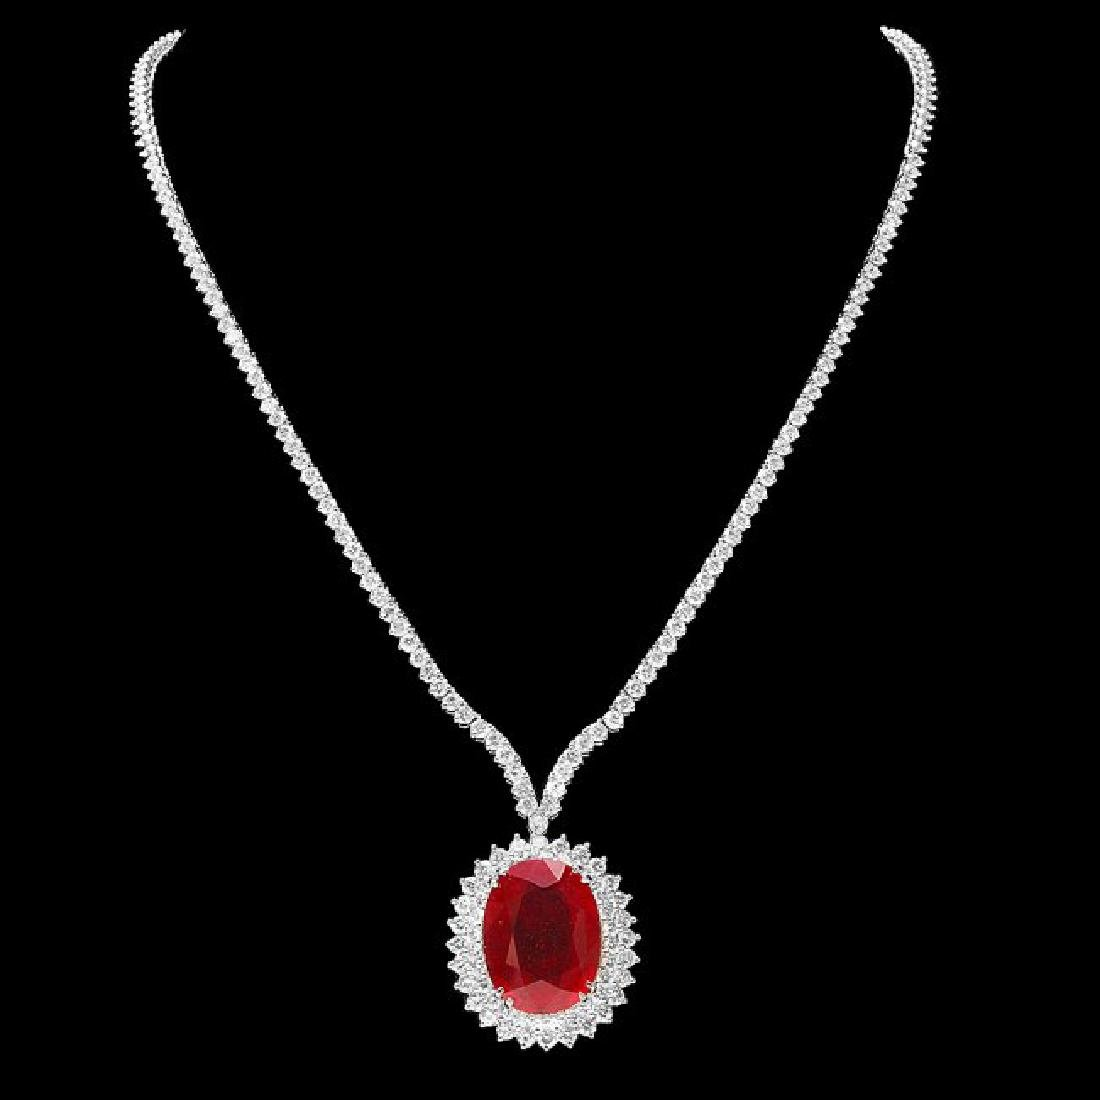 18k Gold 27.00ct Ruby 9.00ct Diamond Necklace